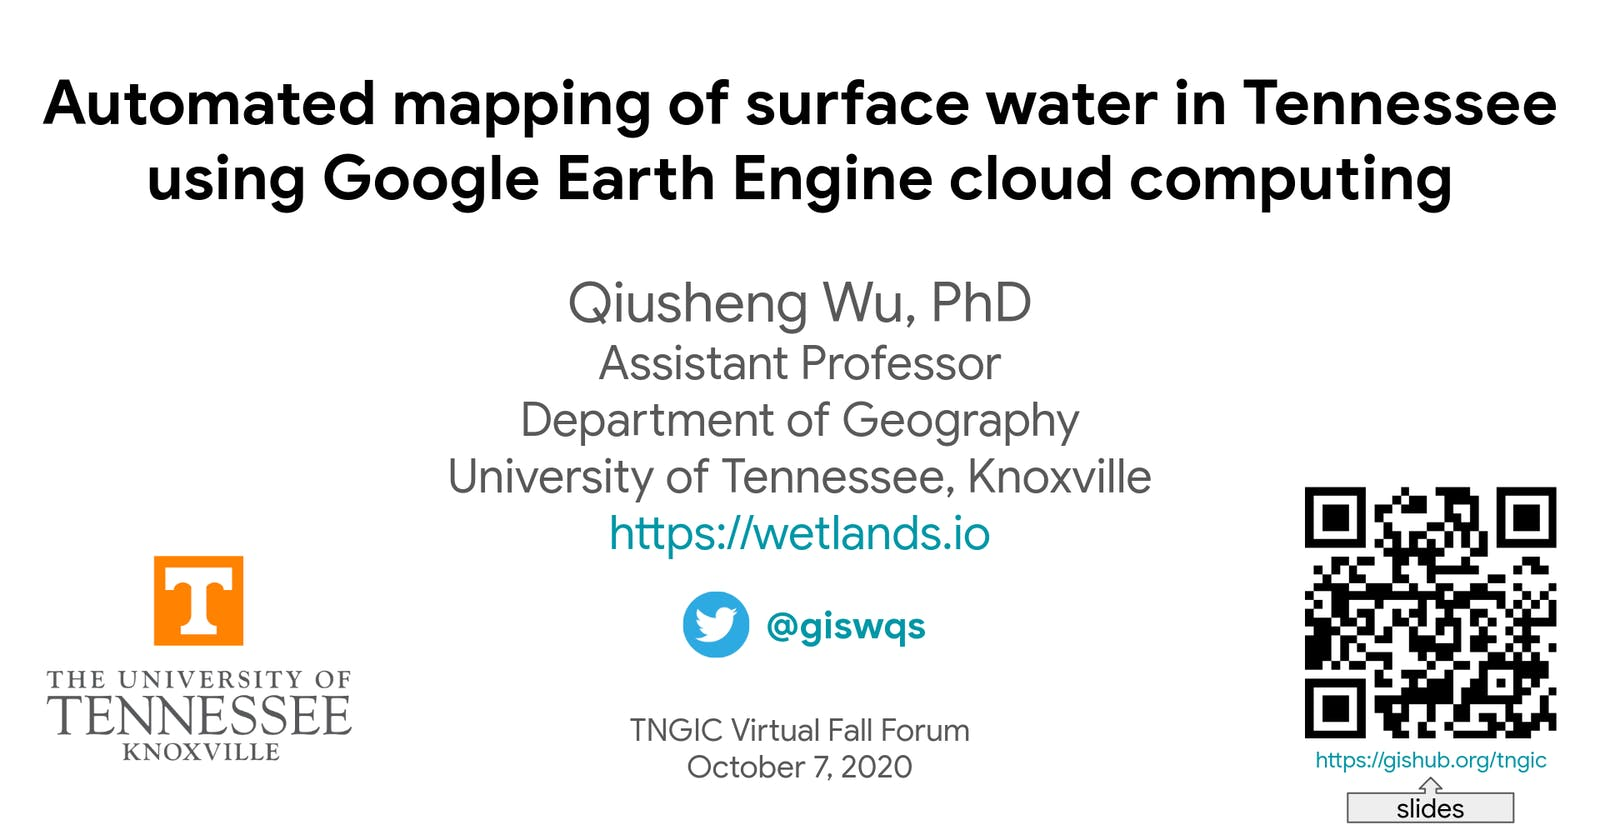 TNGIC Conference - Automated mapping of surface water in Tennessee using Google Earth Engine